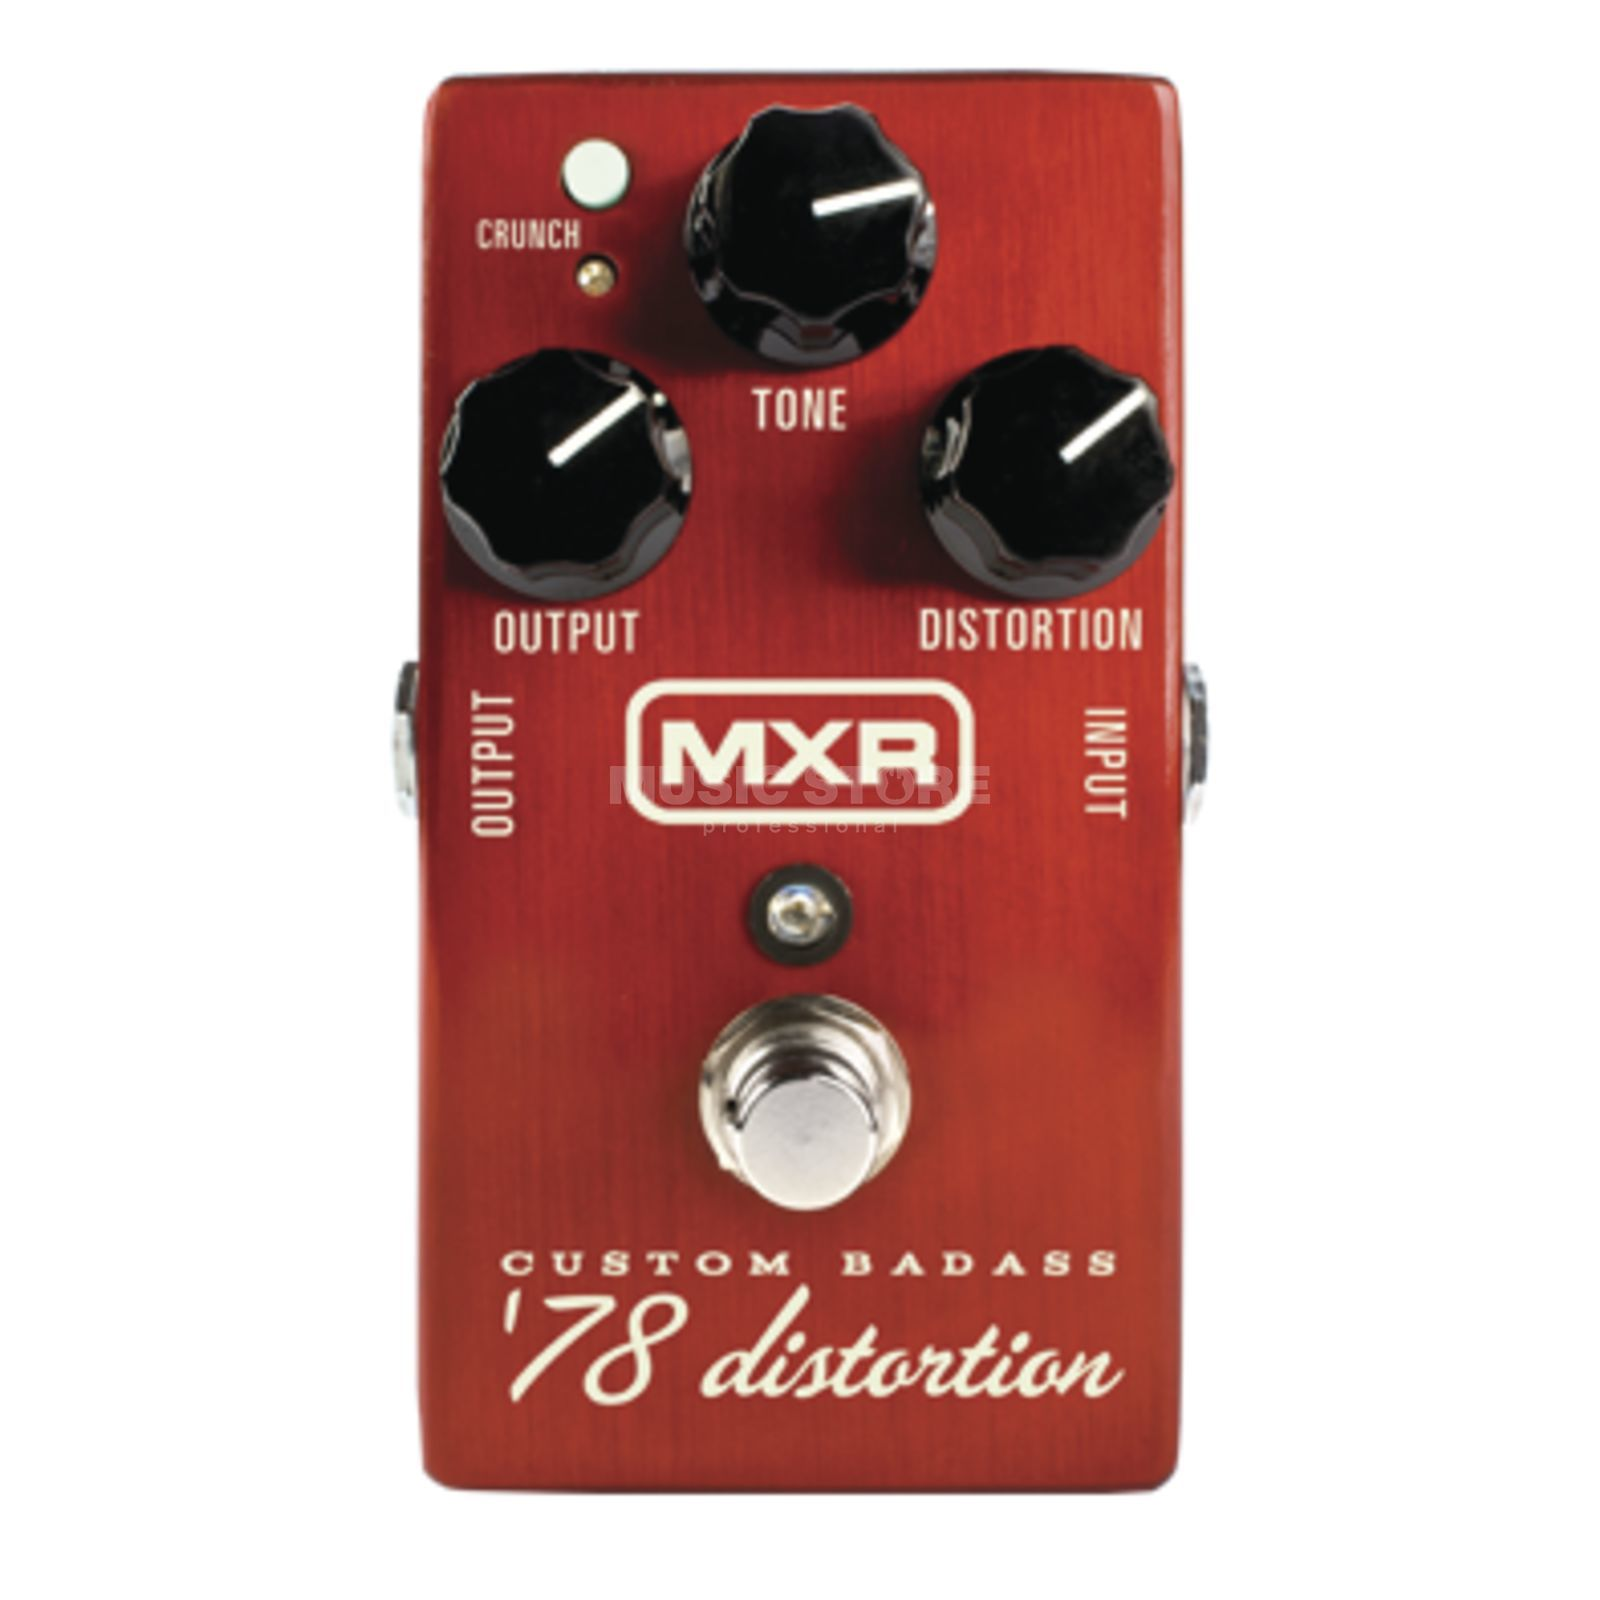 MXR M78 Custom Badass '78 Distorti on Guitar Effects Pedal   Produktbillede